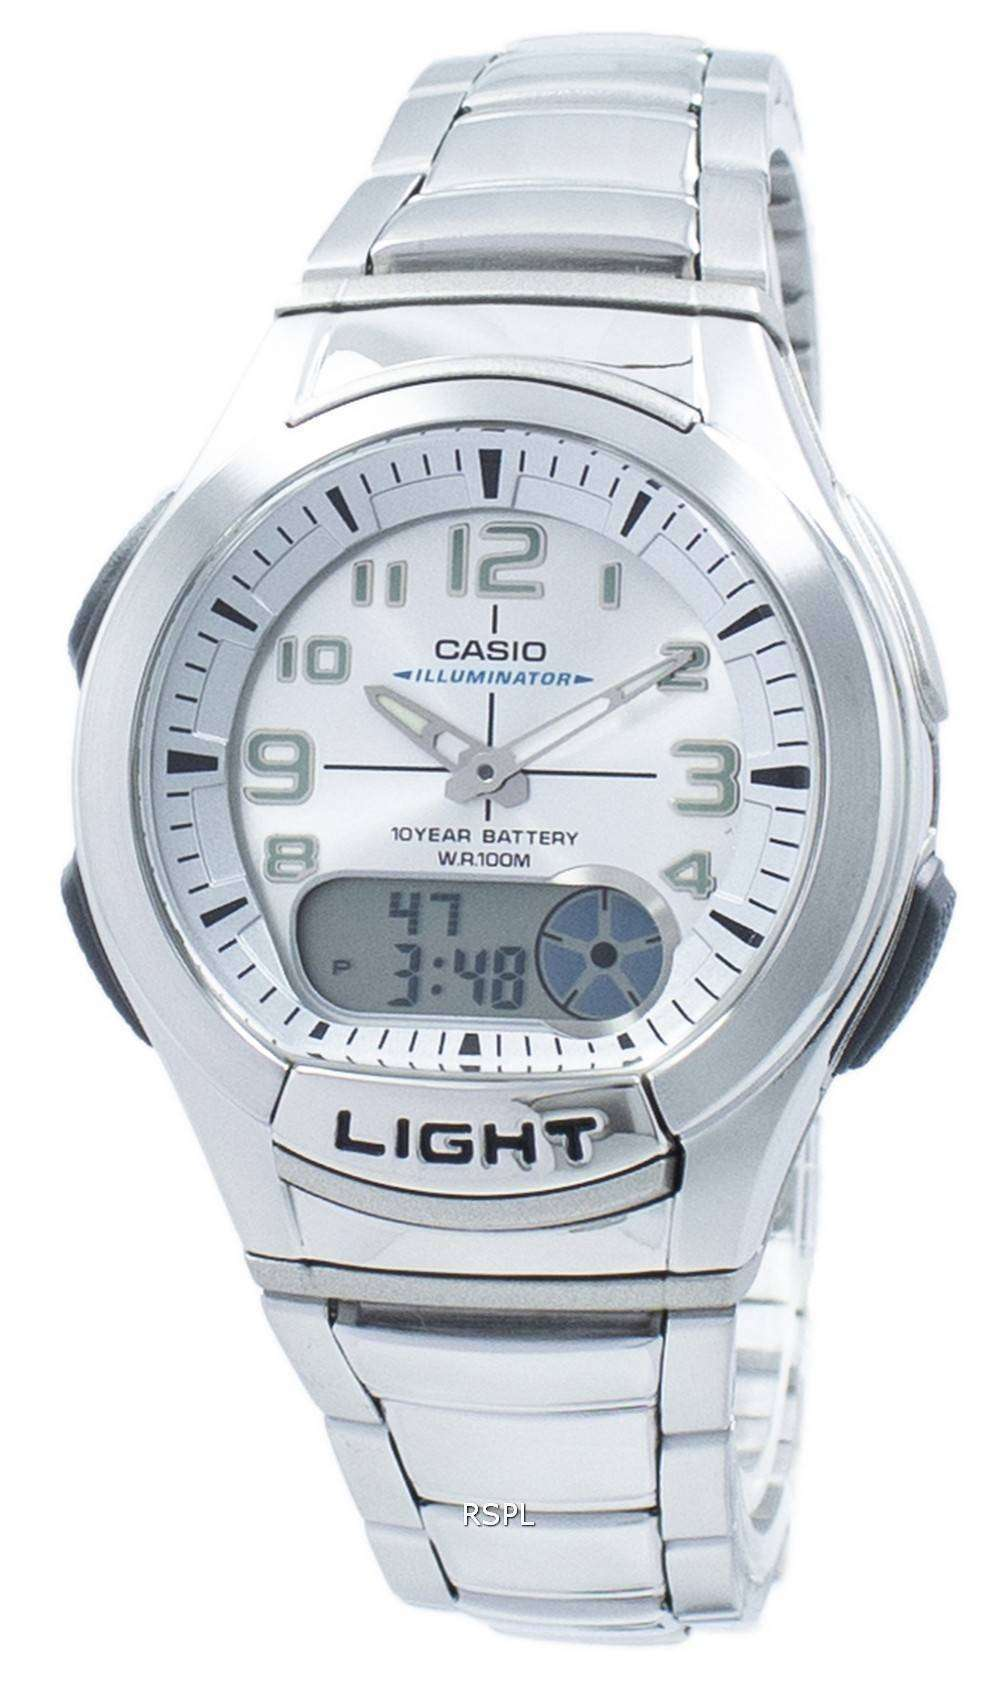 Casio Youth Illuminator Analog Digital AQ-180WD-7BV ...